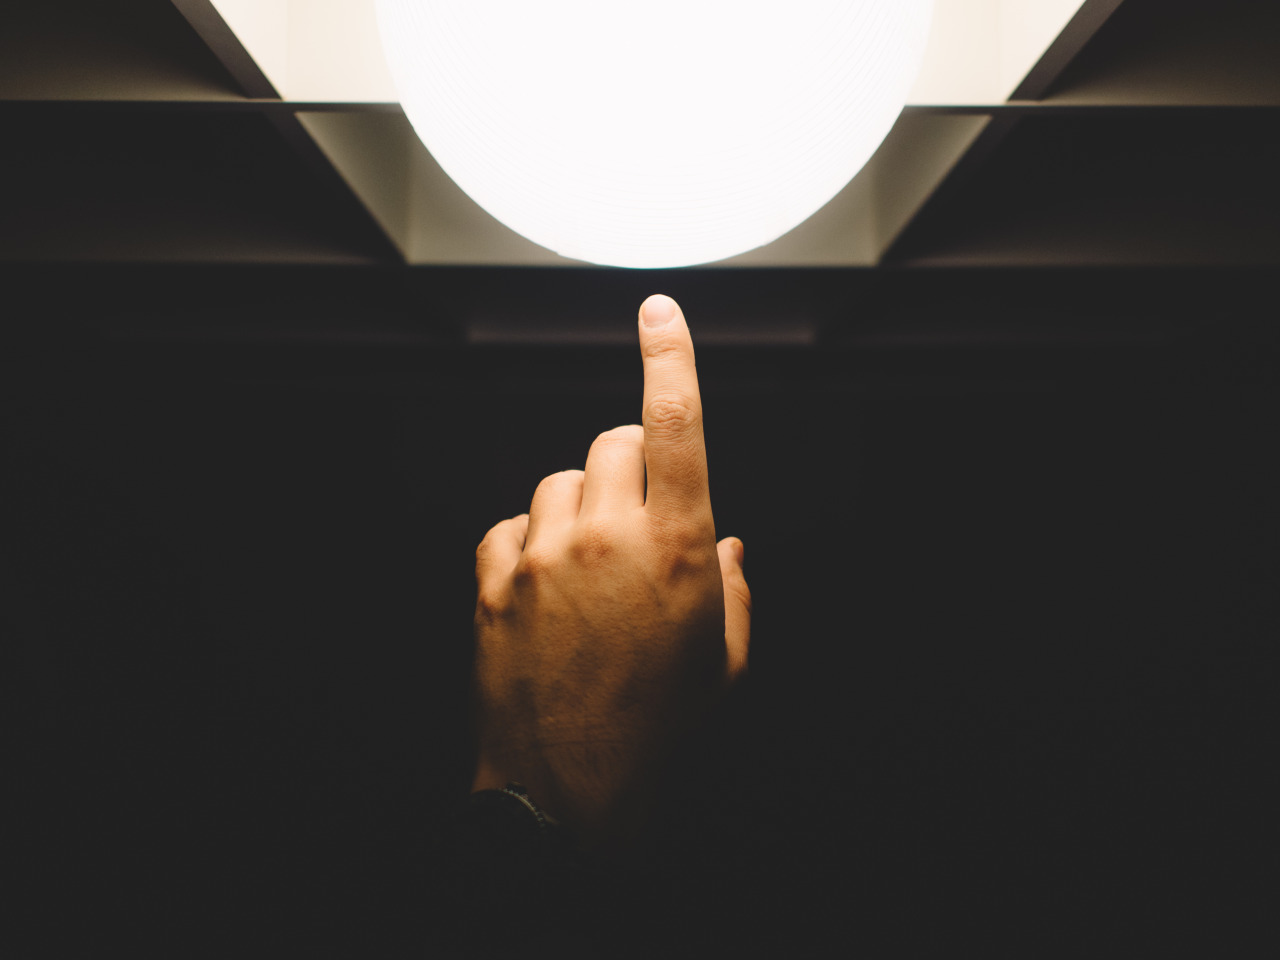 Finger pointing to light crowdfunding marketing